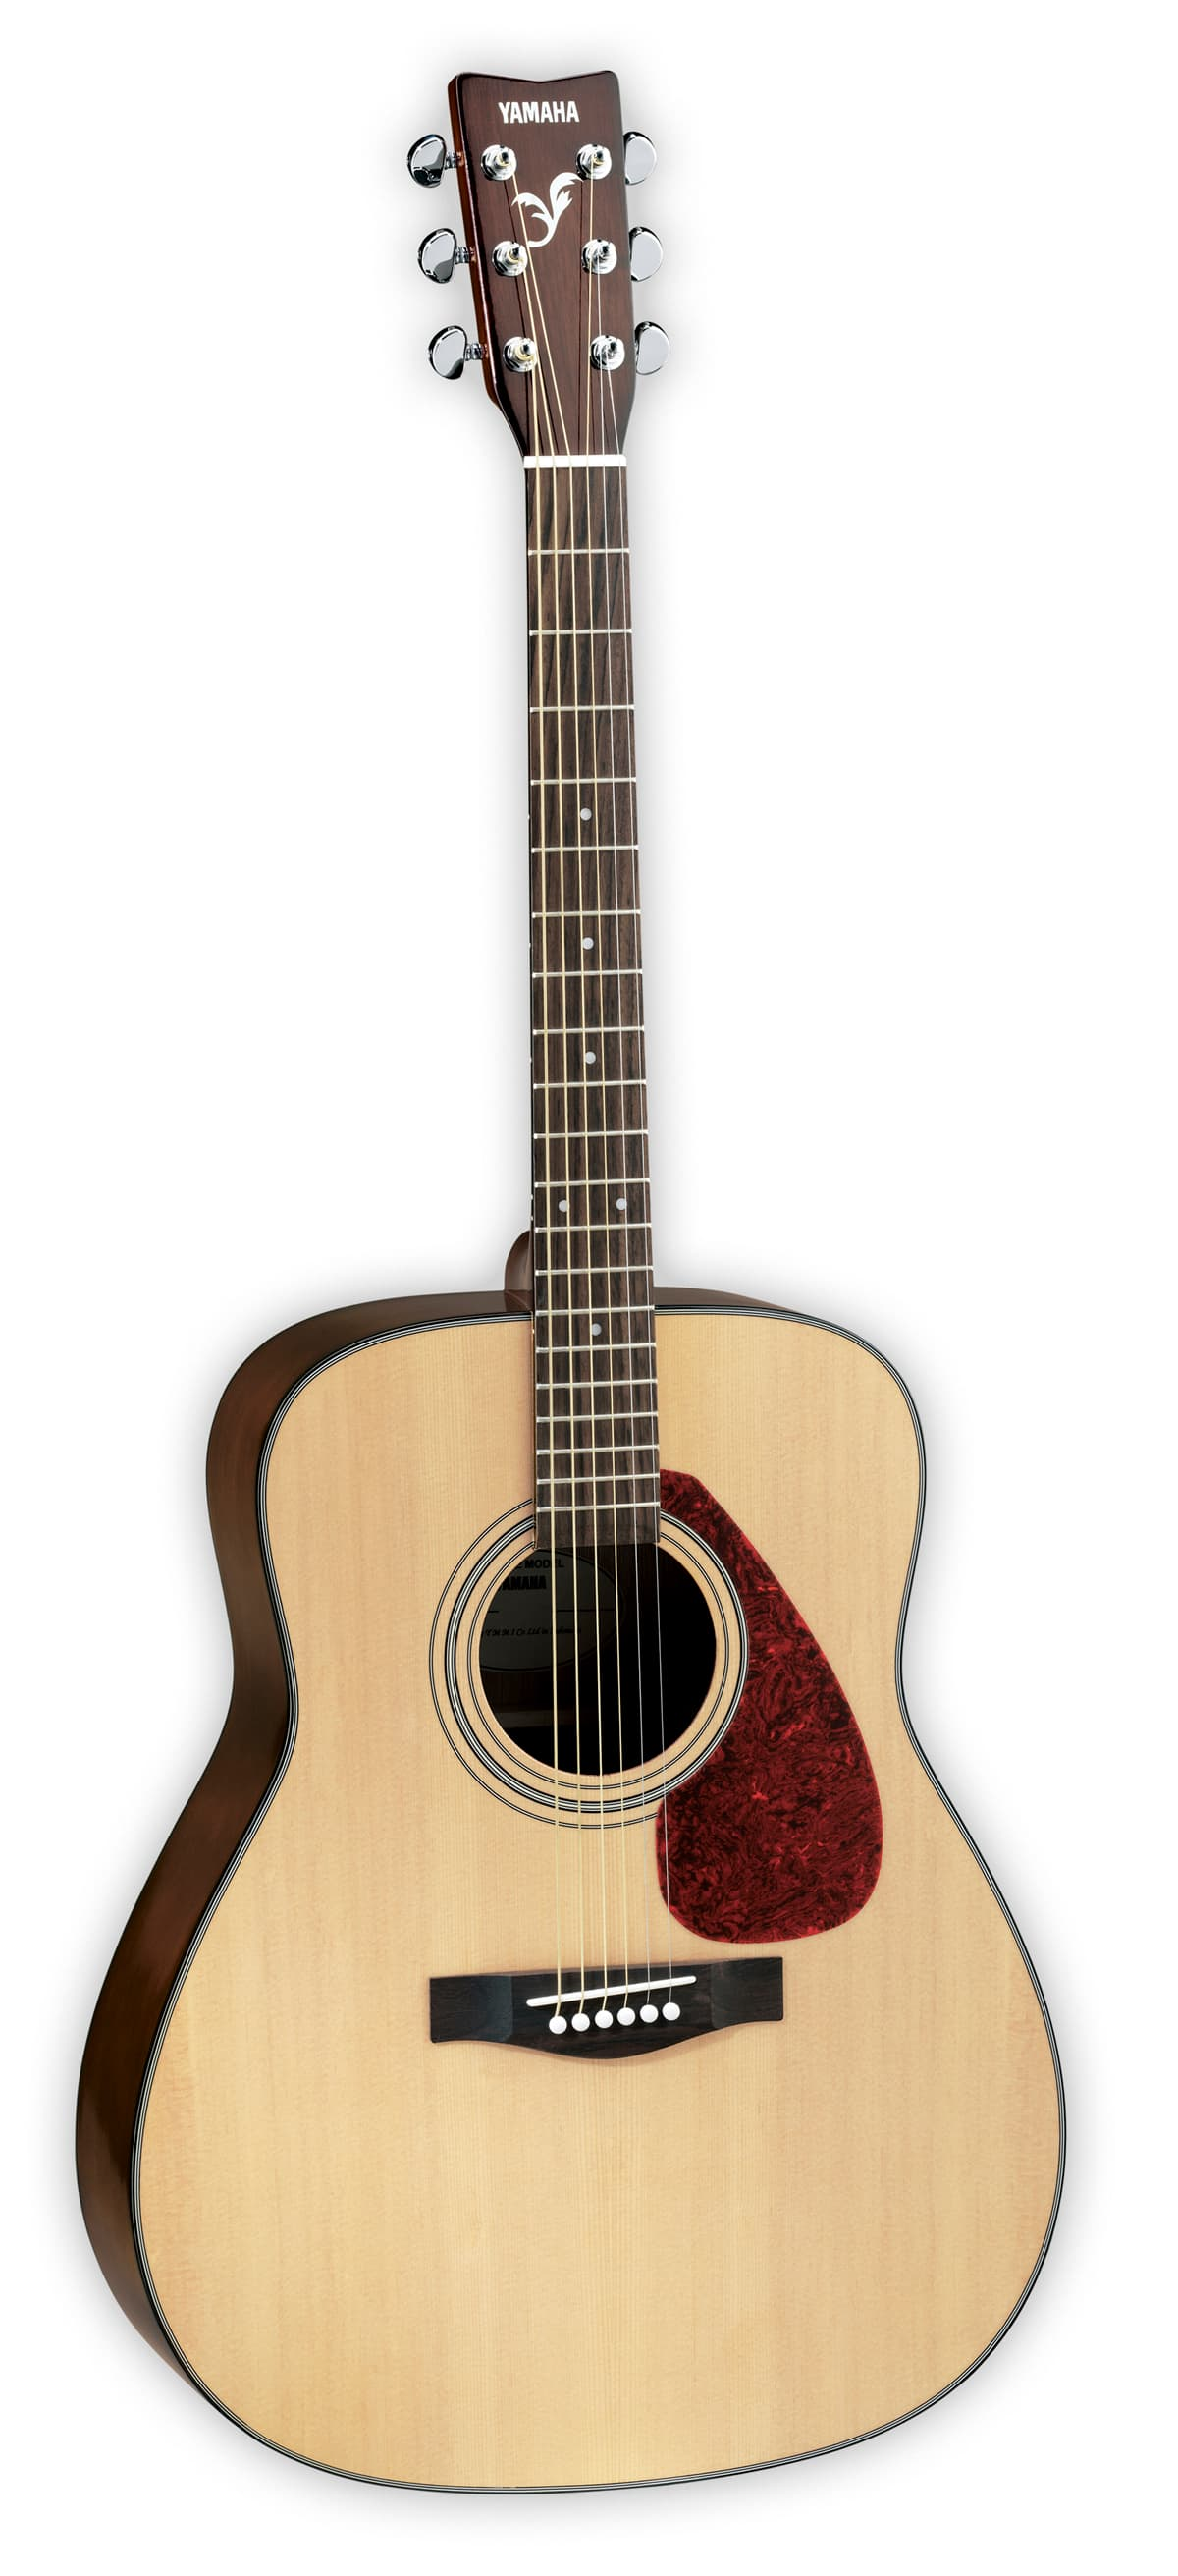 Yamaha f325d dreadnought acoustic guitar natural reverb for Yamaha classic guitar